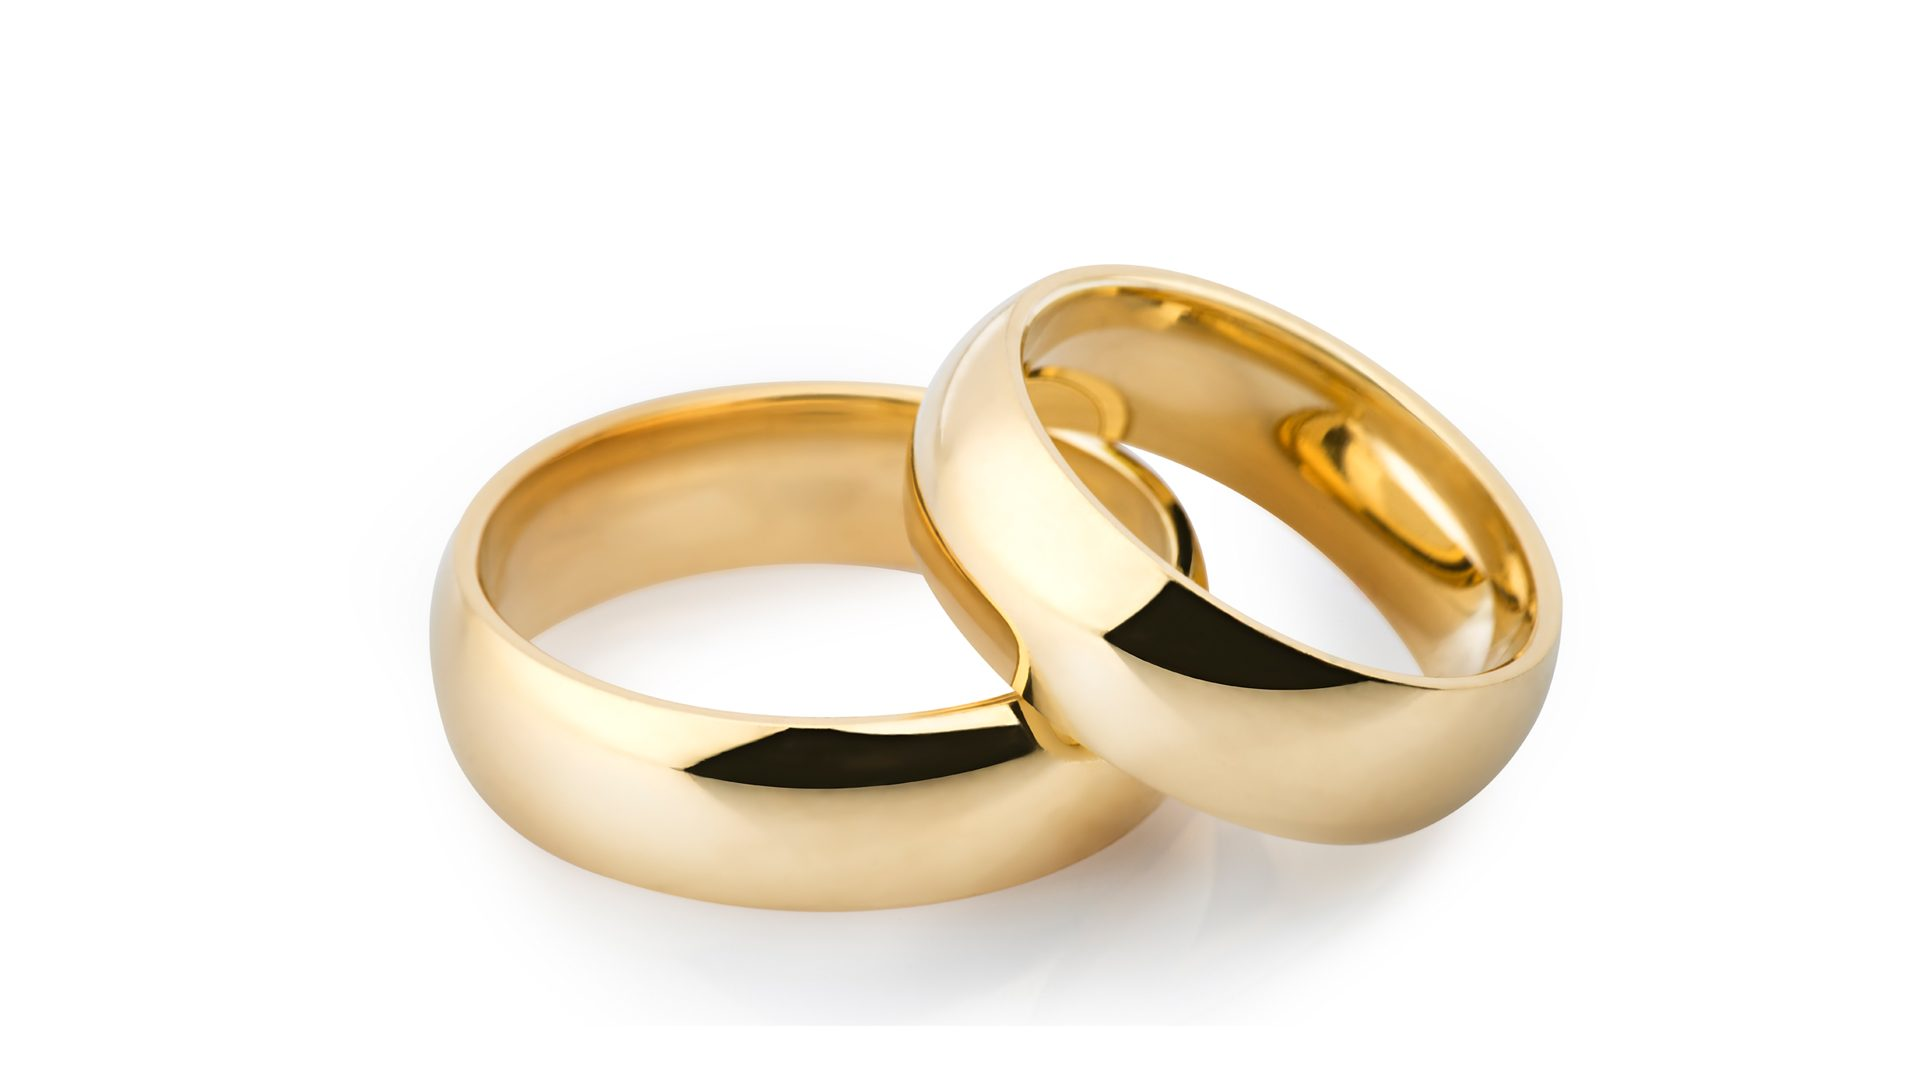 Entwined Gold wedding rings